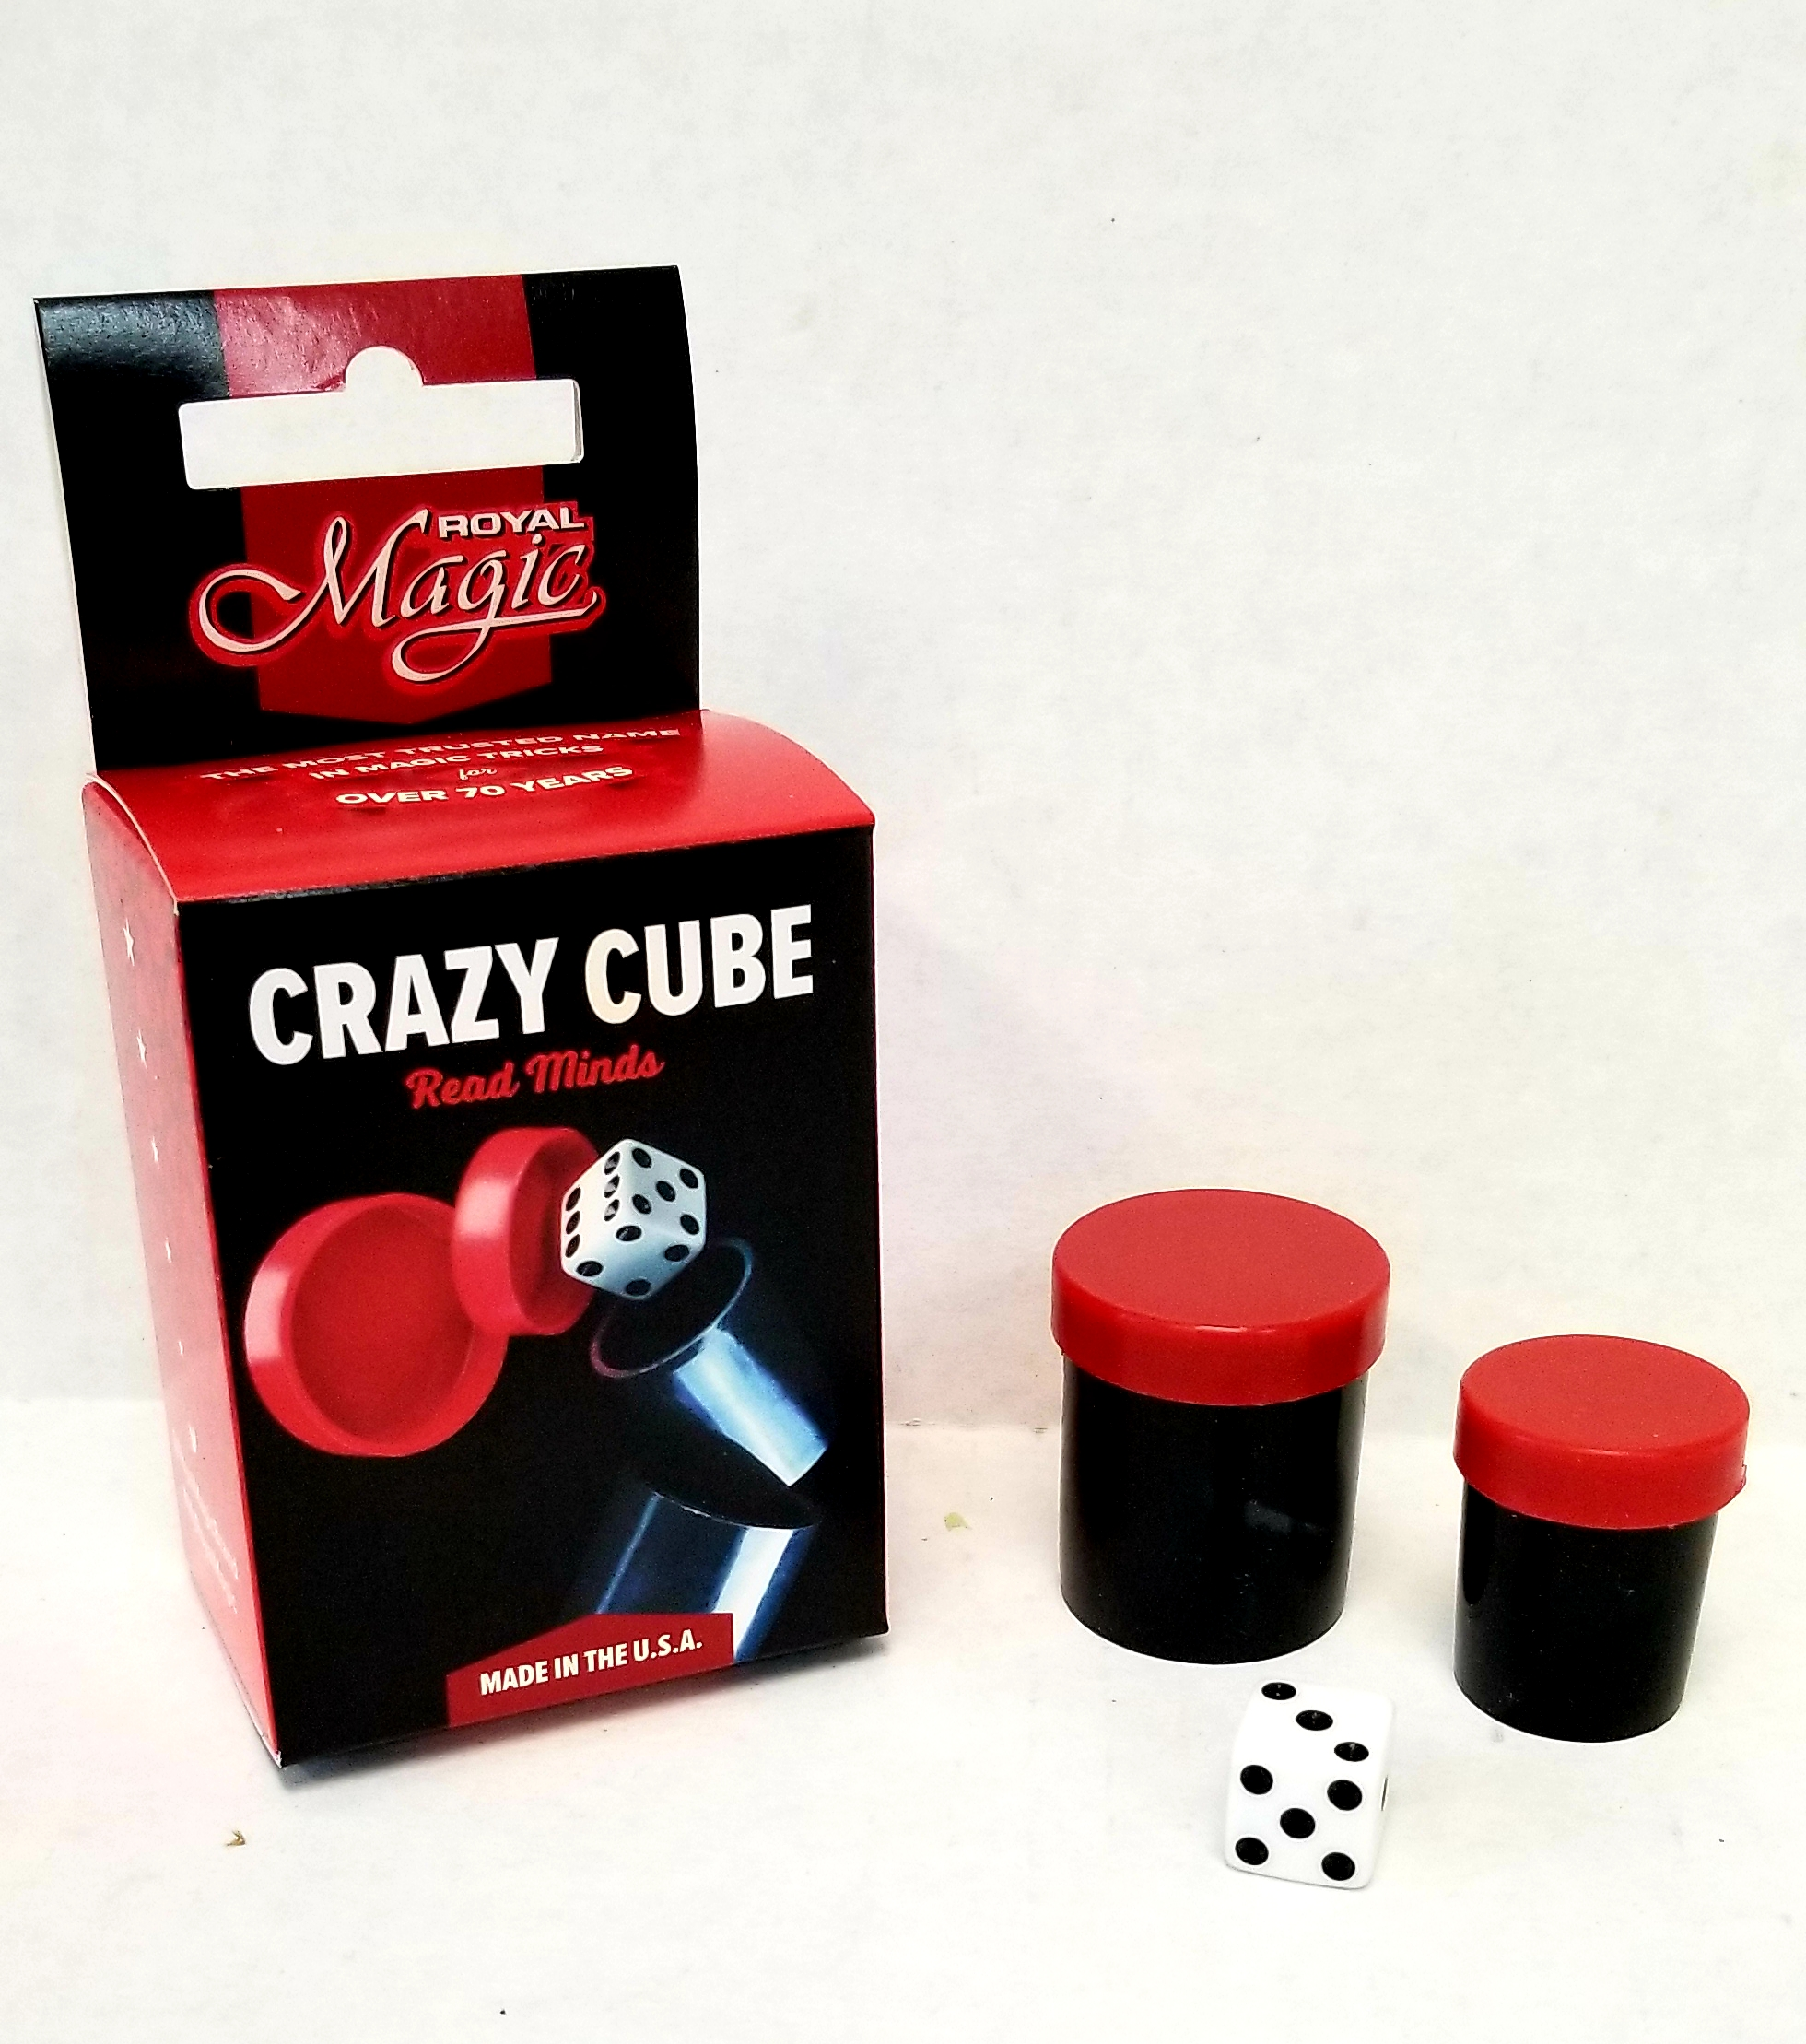 Royal Crazy Cube (R)